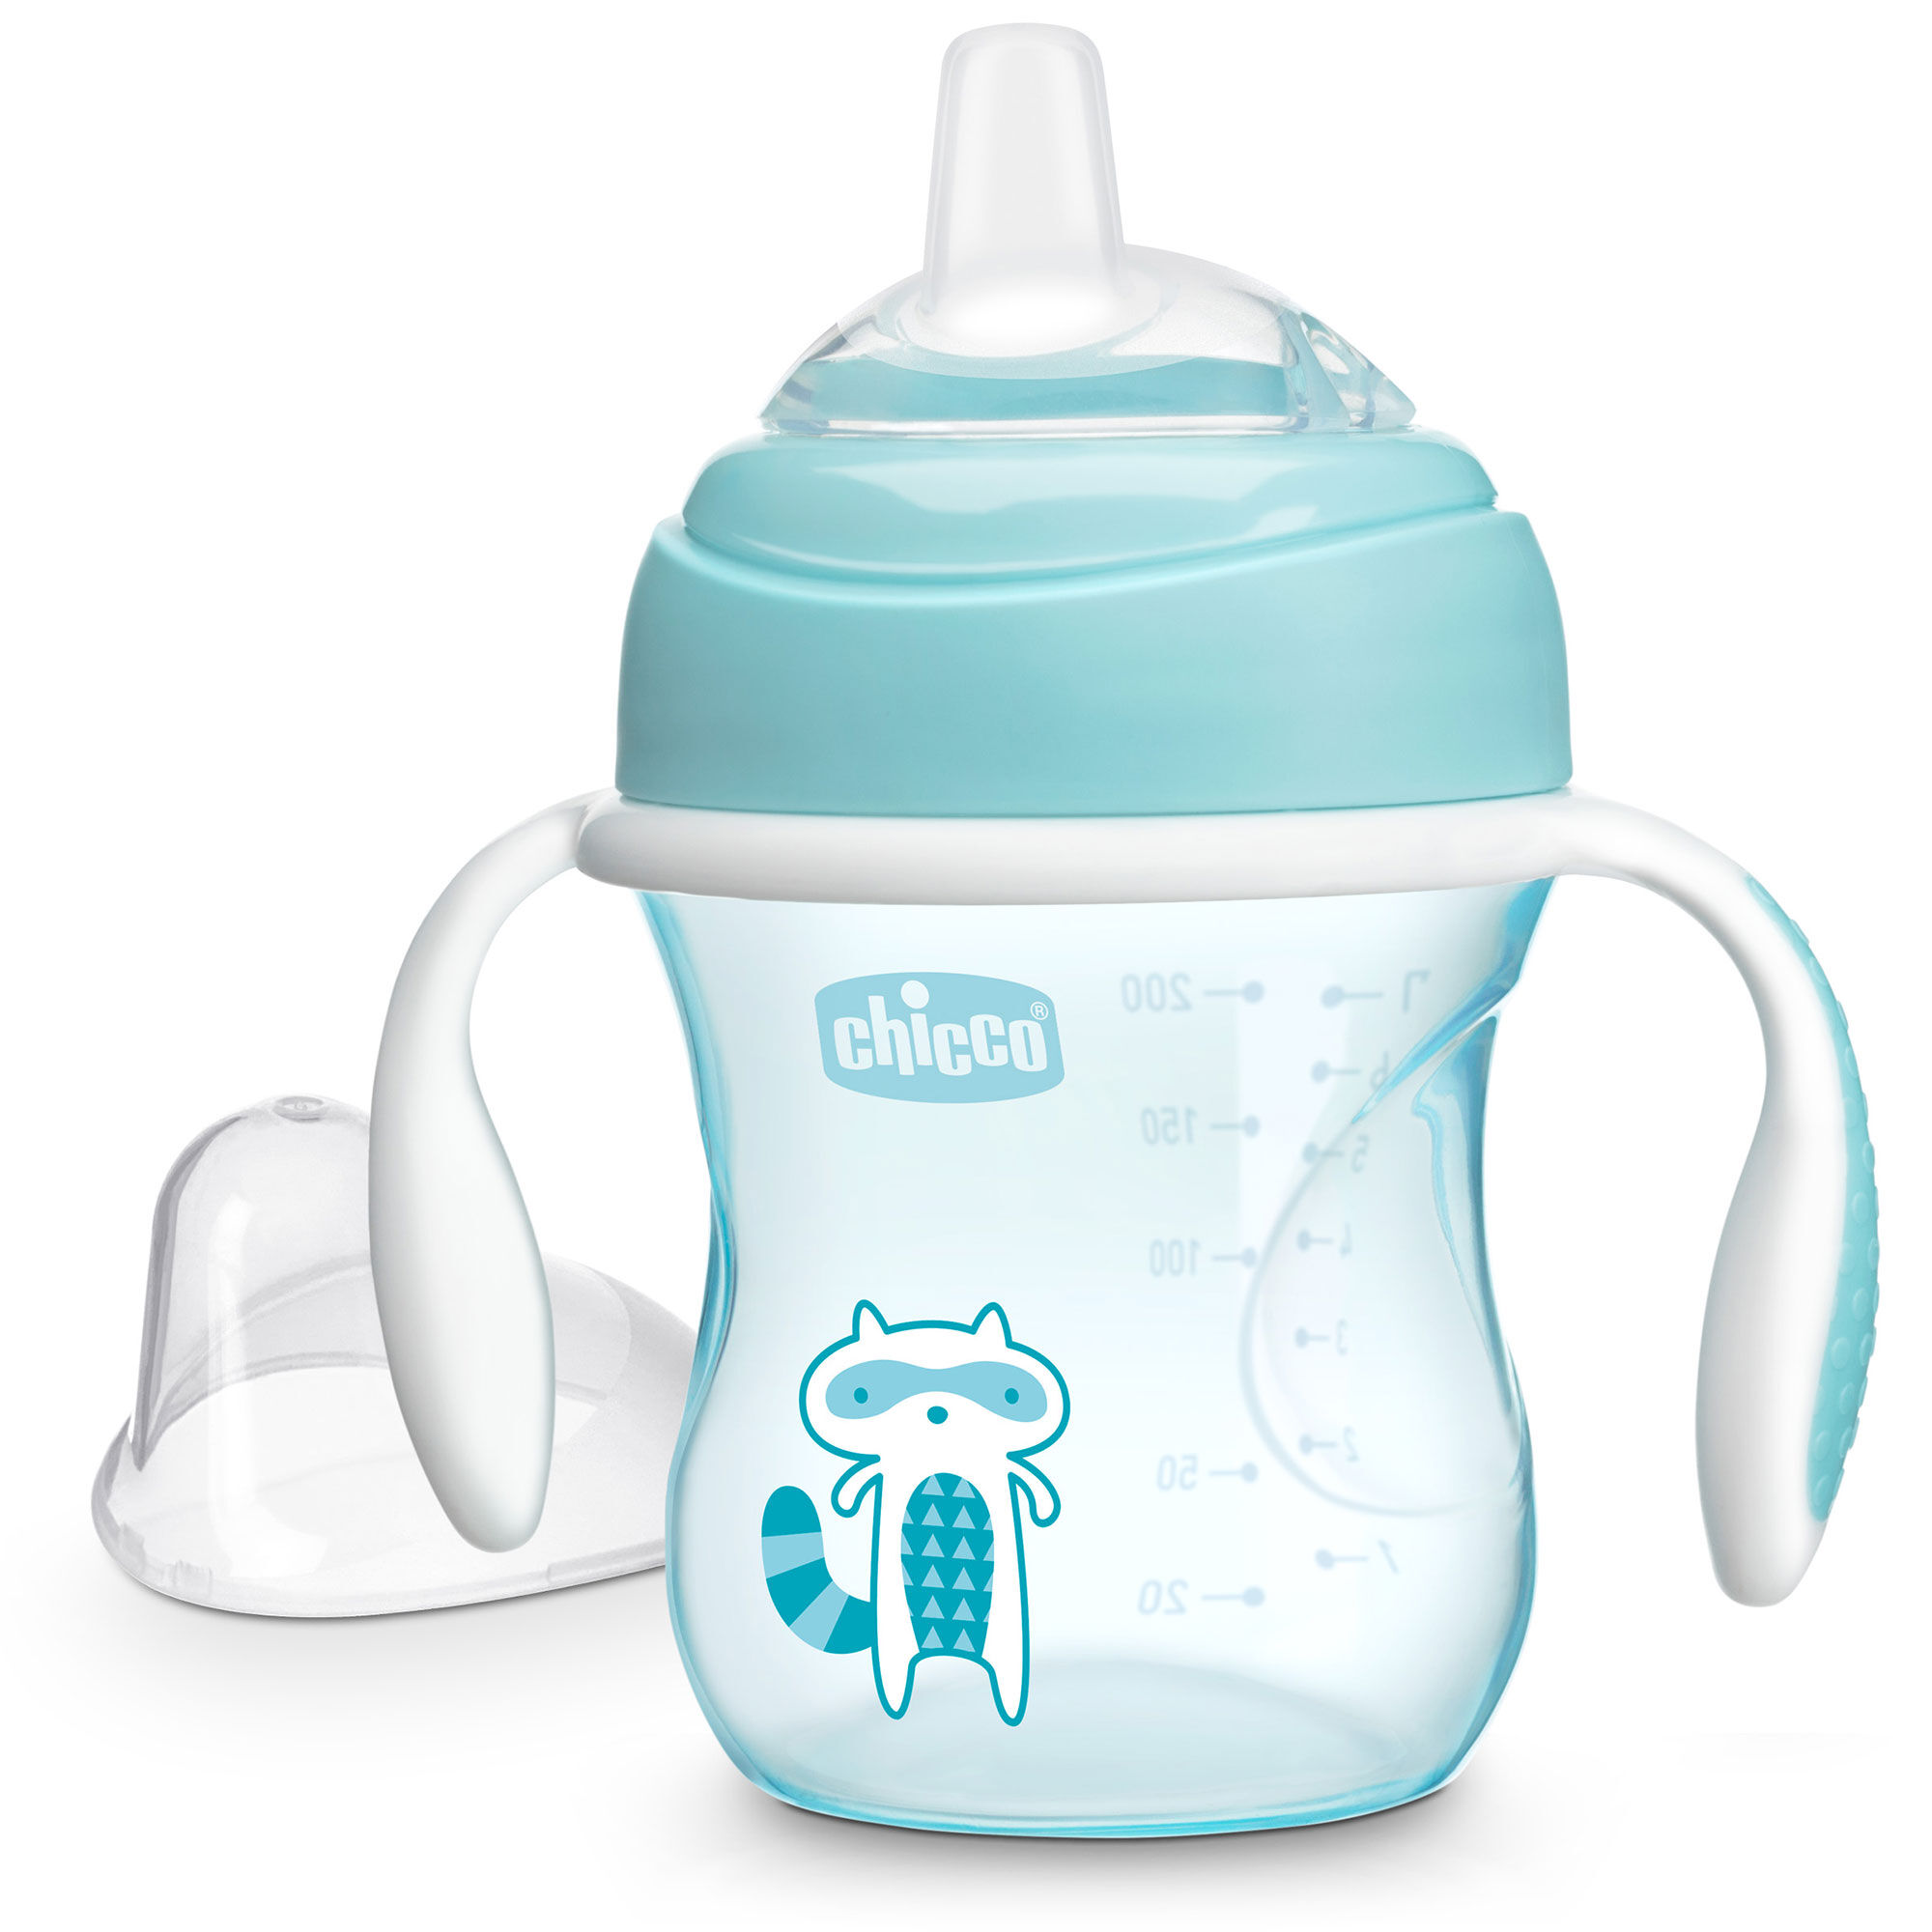 Chicco Silicone Spout Transition Cup